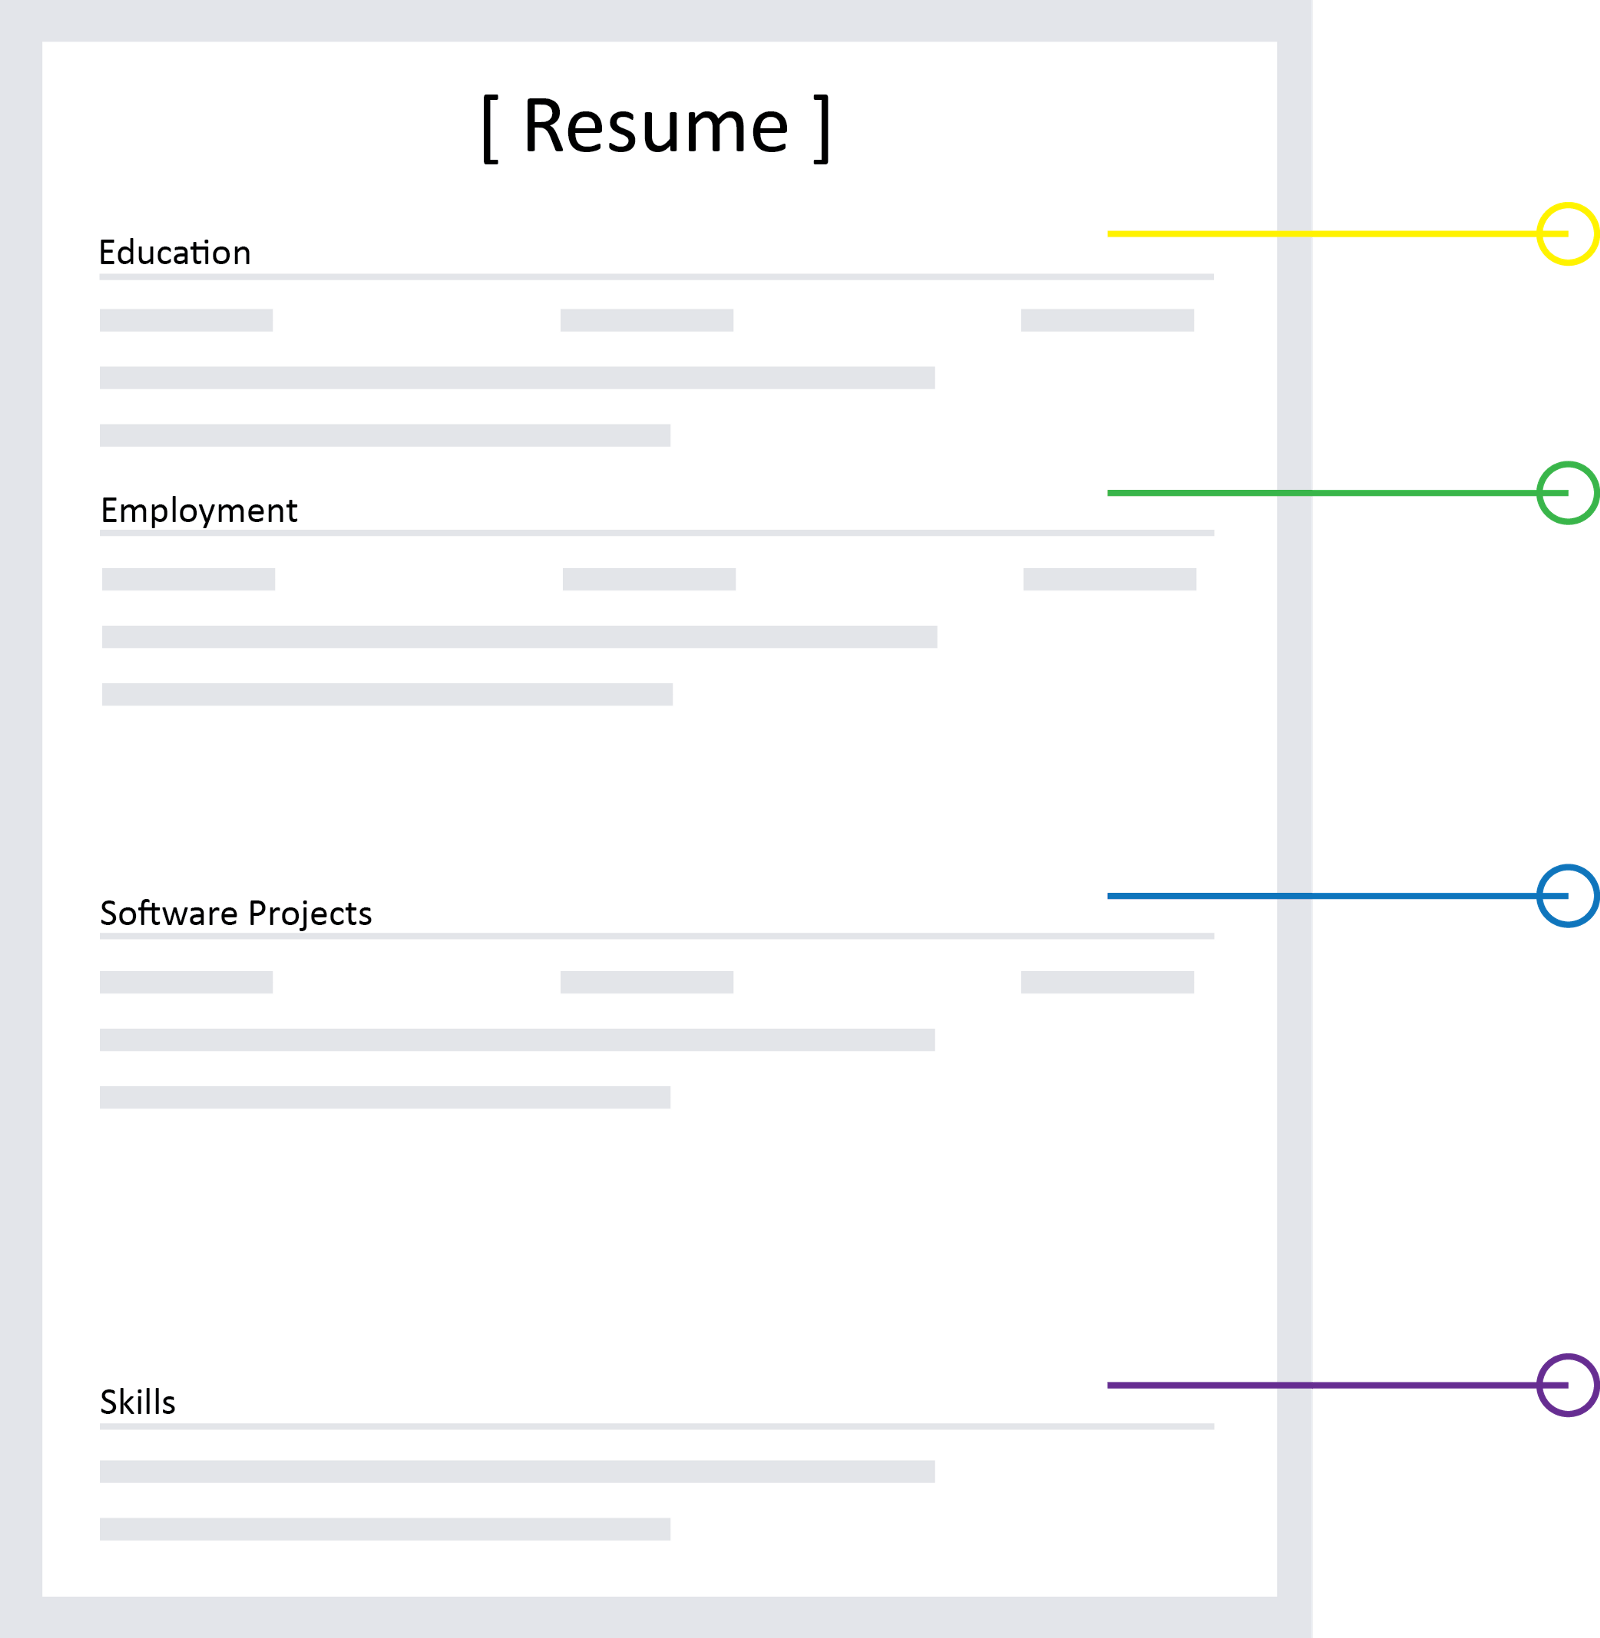 Best Way To Write An Objective For A Resume How To Write A Killer Software Engineering Résumé